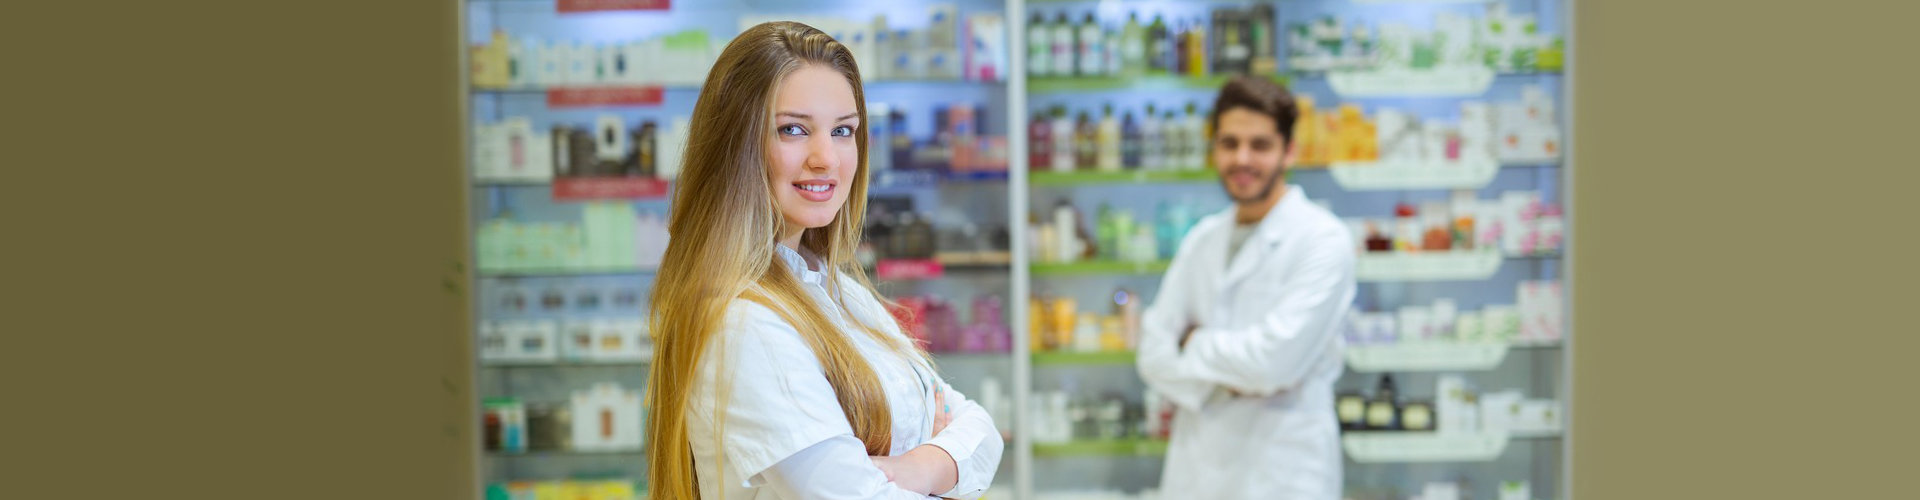 male and female pharmacist standing in front of pharmacy products